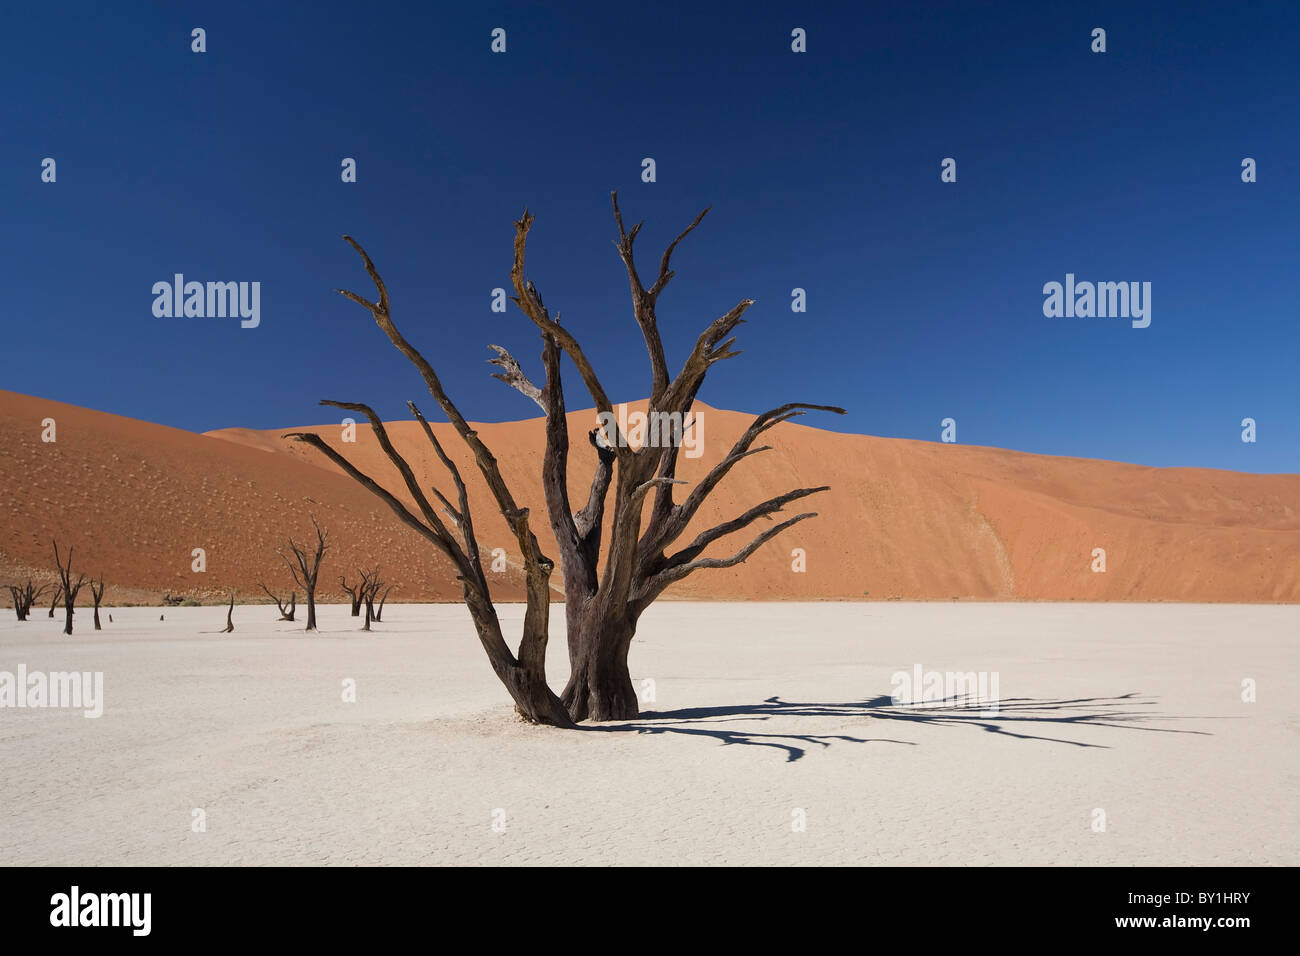 Namibia, Deadvlei. A long-dead tree stands, almost petrified, in the searing heat of Deadvlei. - Stock Image